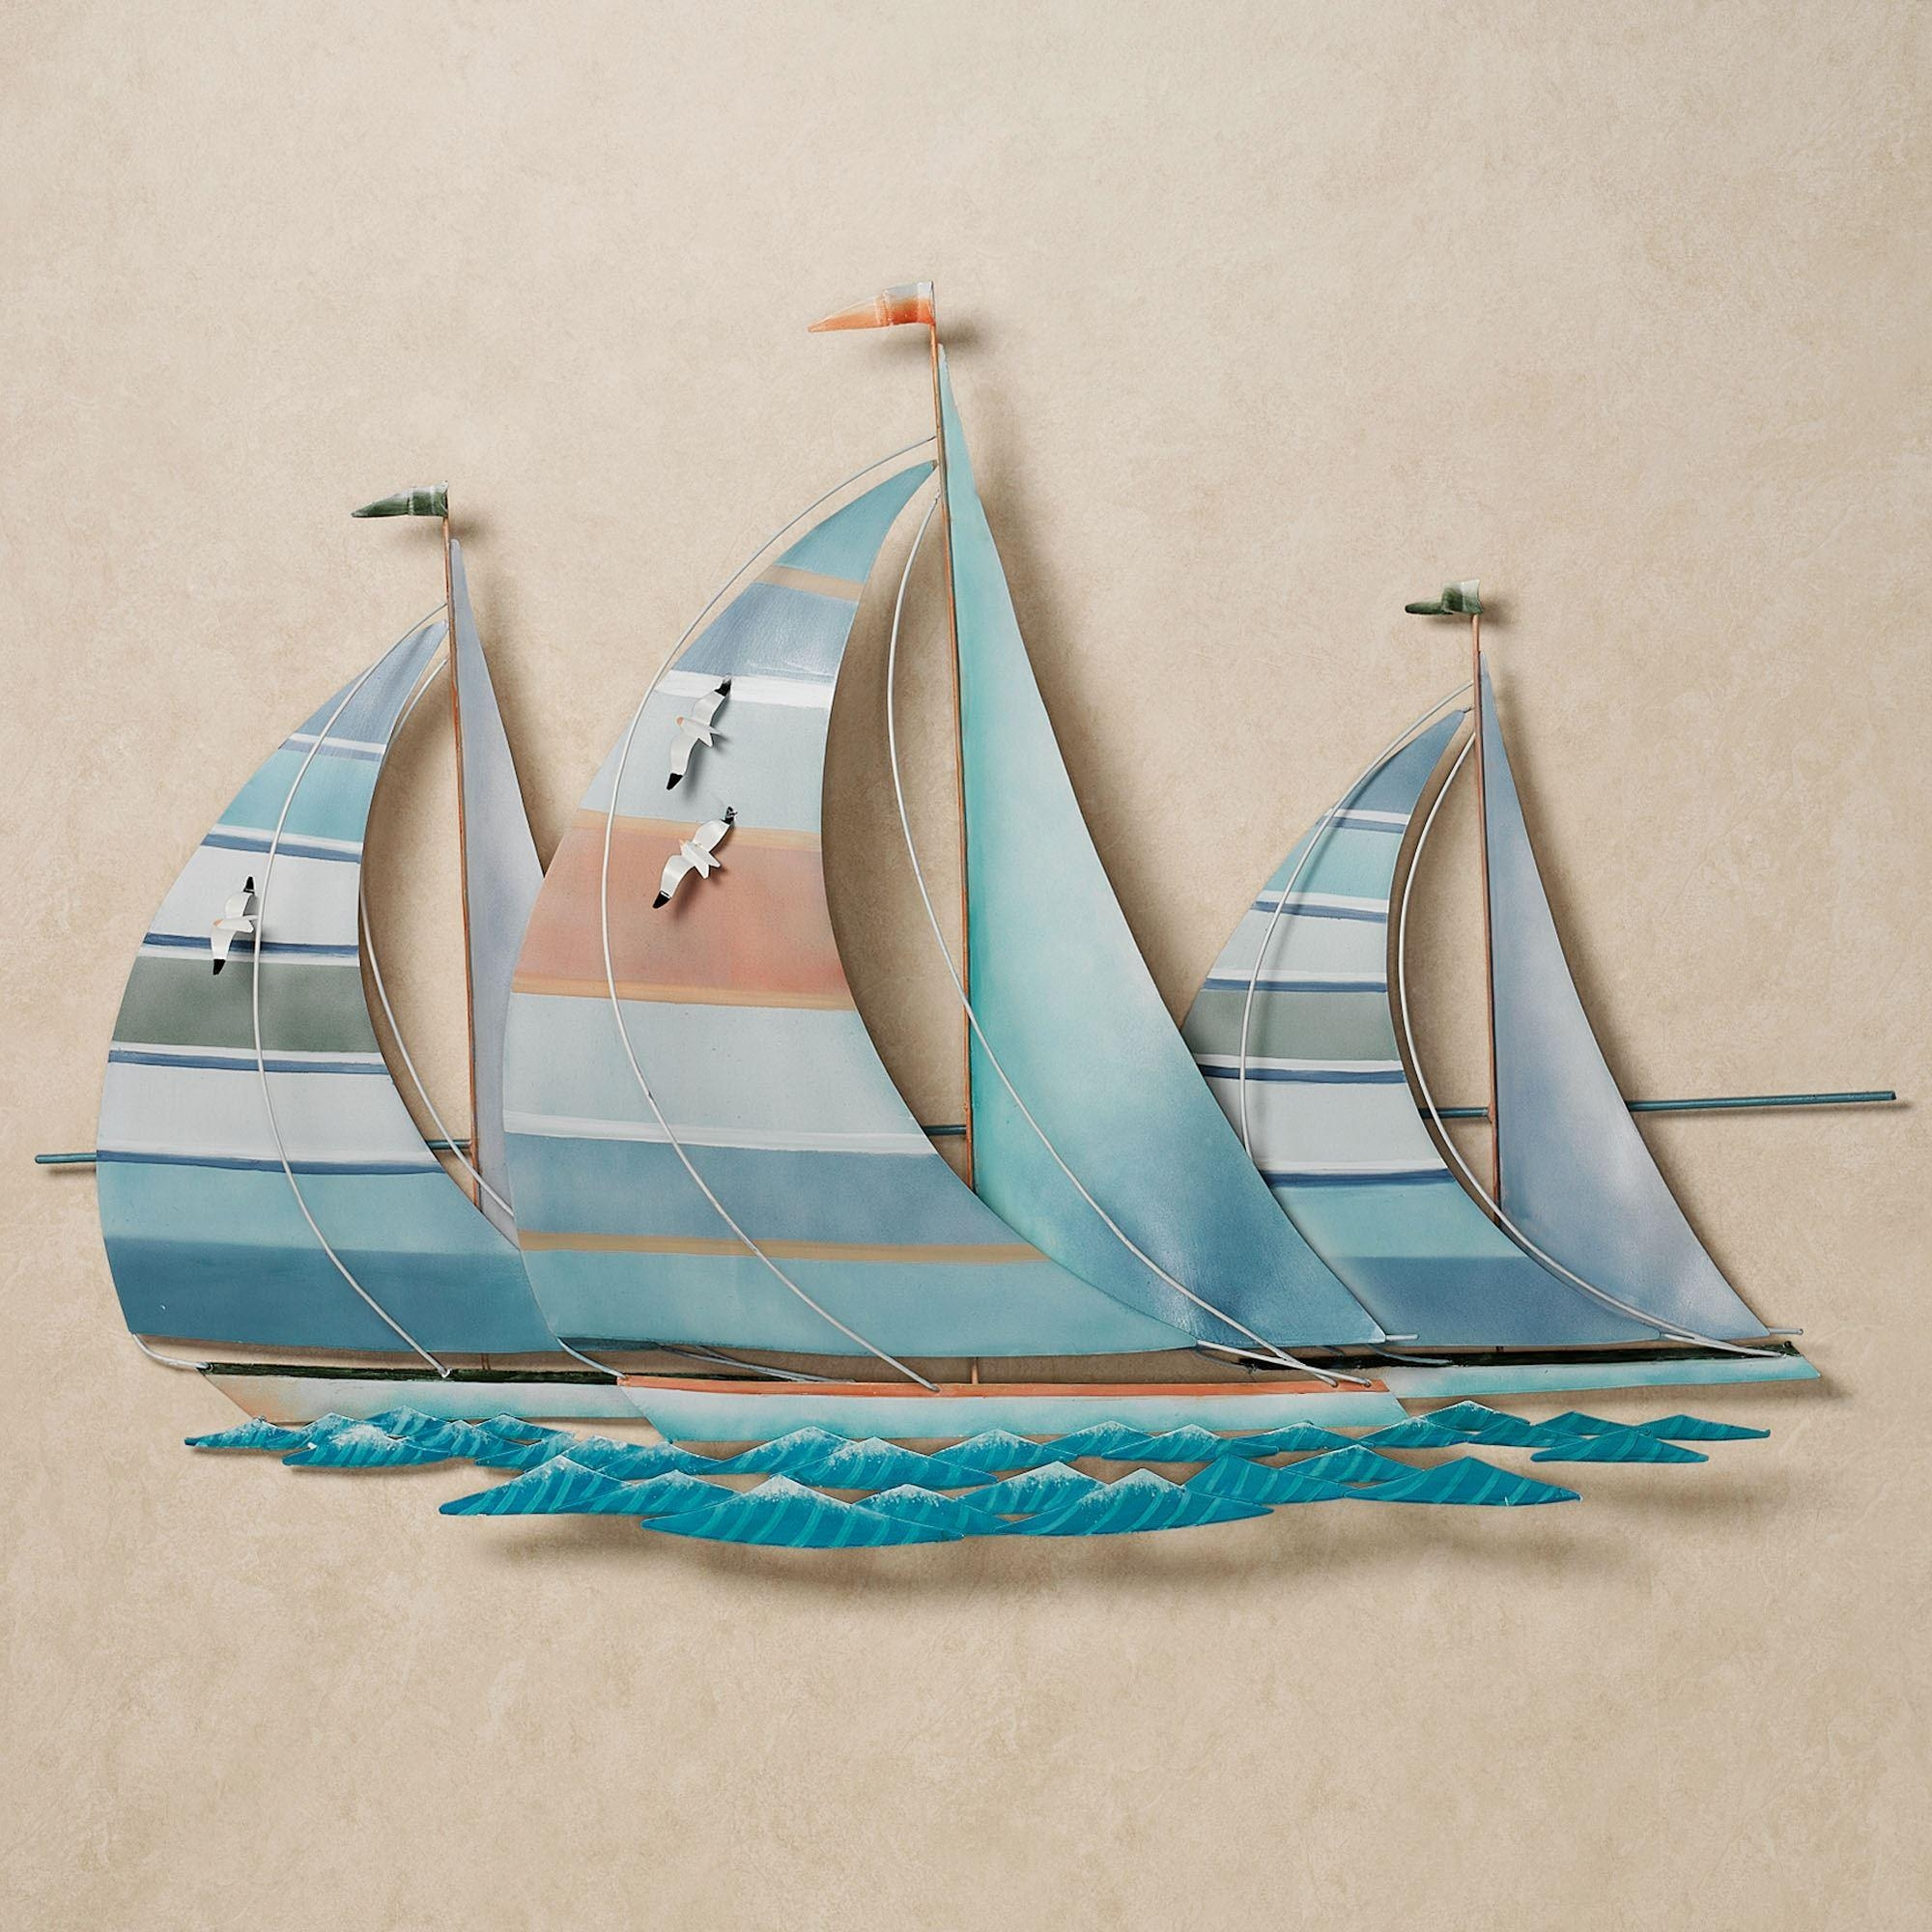 Regatta Finish Line Multi Cool Metal Sailboat Wall Sculpture Intended For Metal Sailboat Wall Art (View 16 of 20)